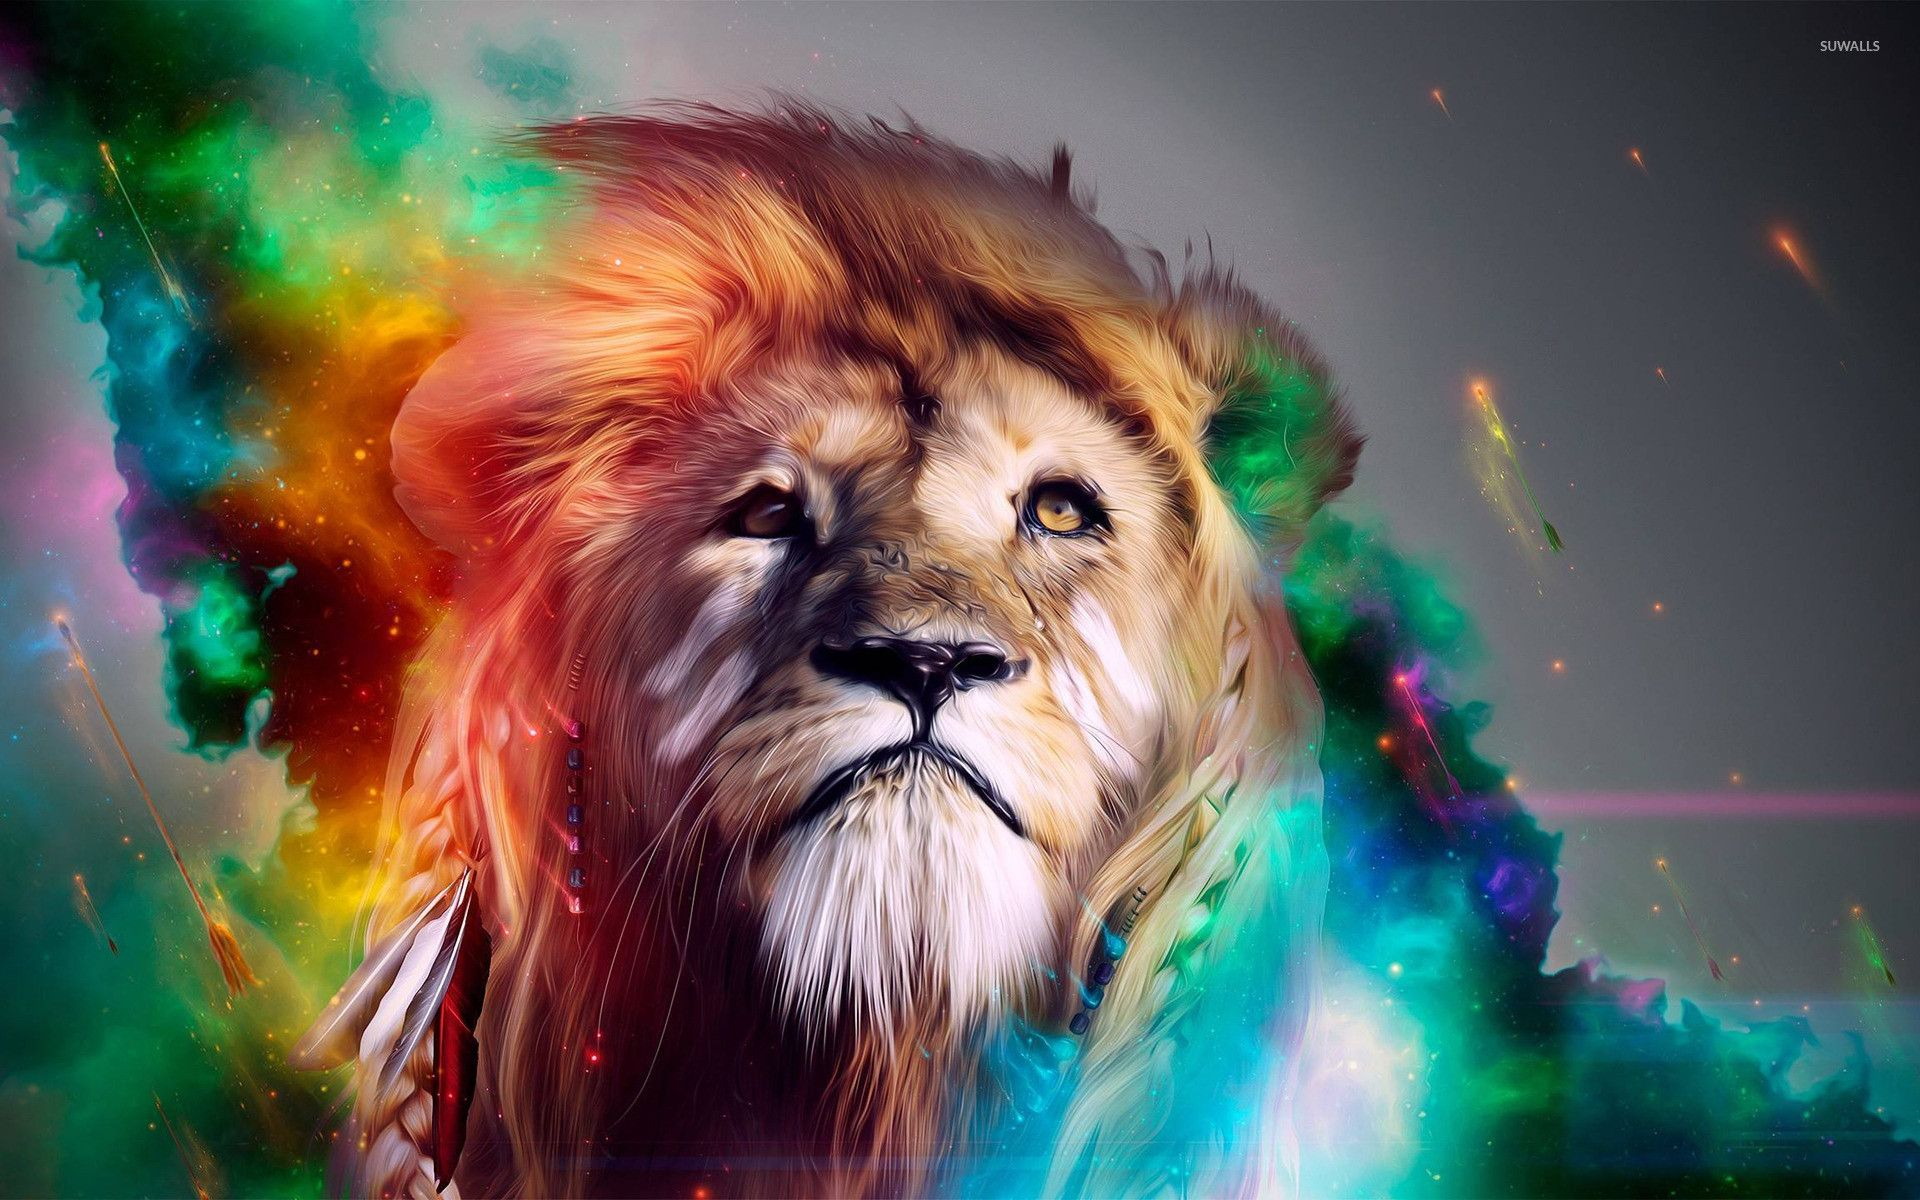 68 Colorful Lion Wallpapers On Wallpaperplay Nel 2020